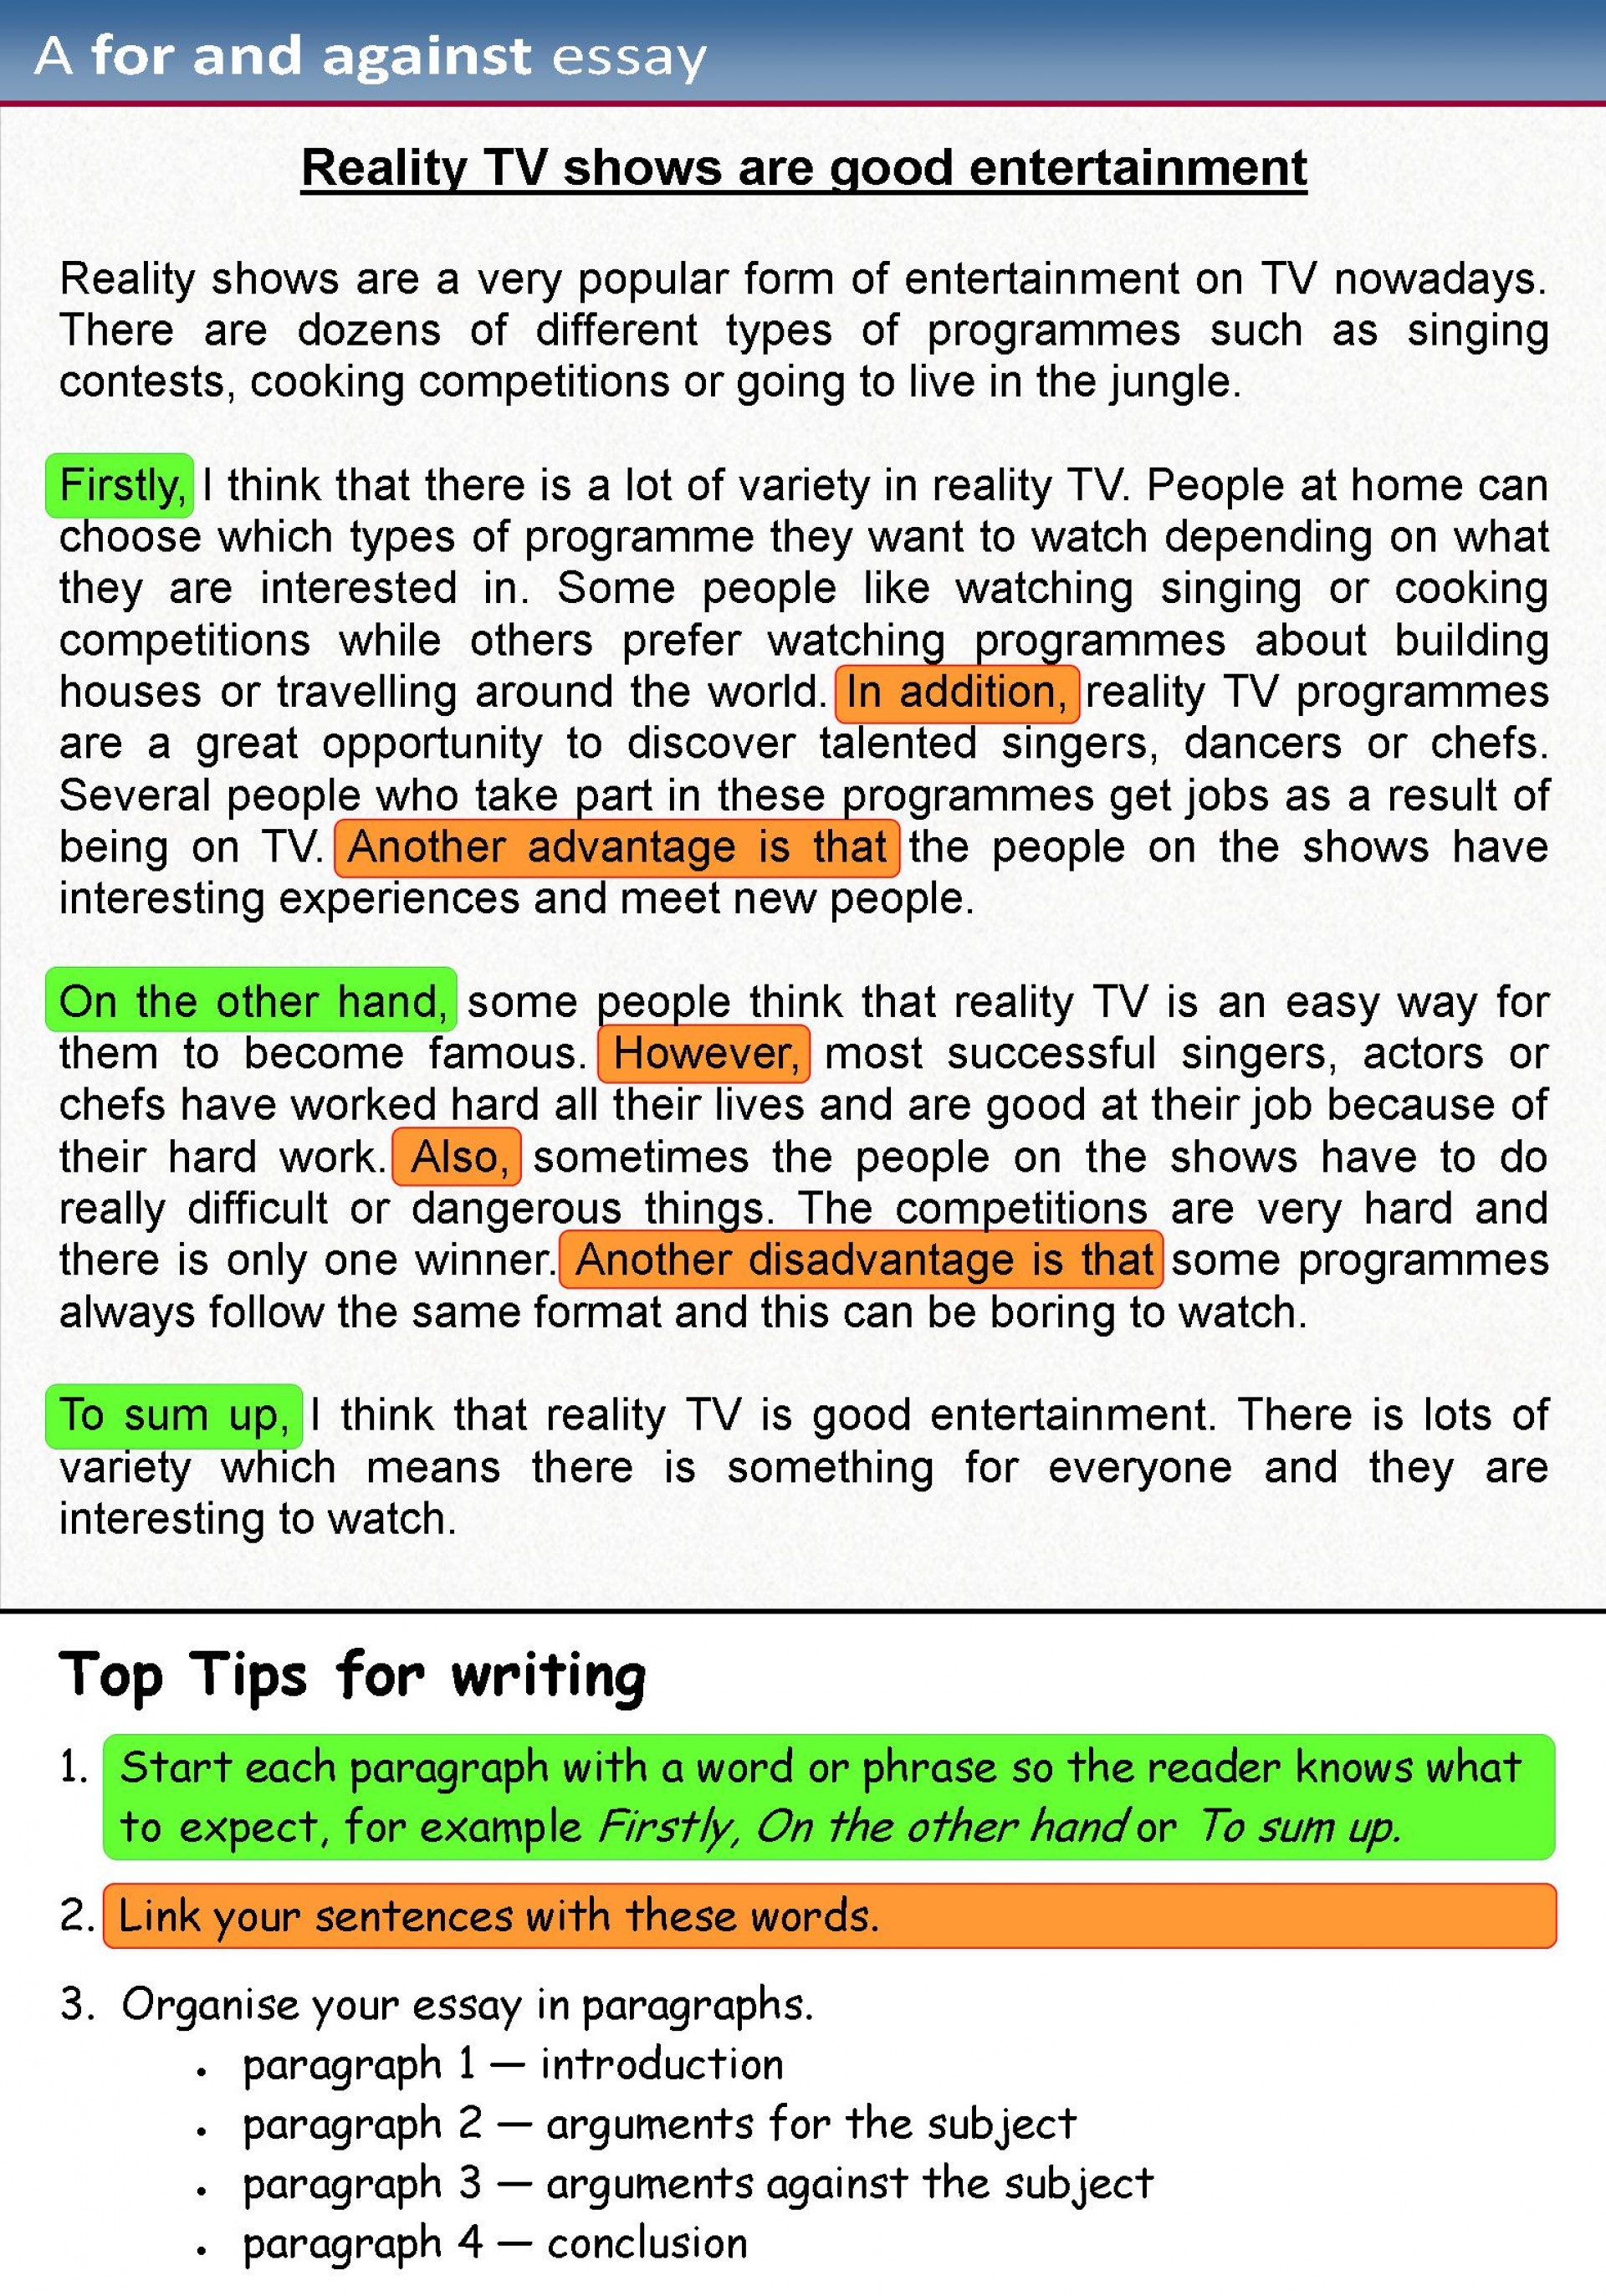 027 How Many Sentences Are In Essay For Against 1 Best A Much Make Paragraph An 250 Word 1920